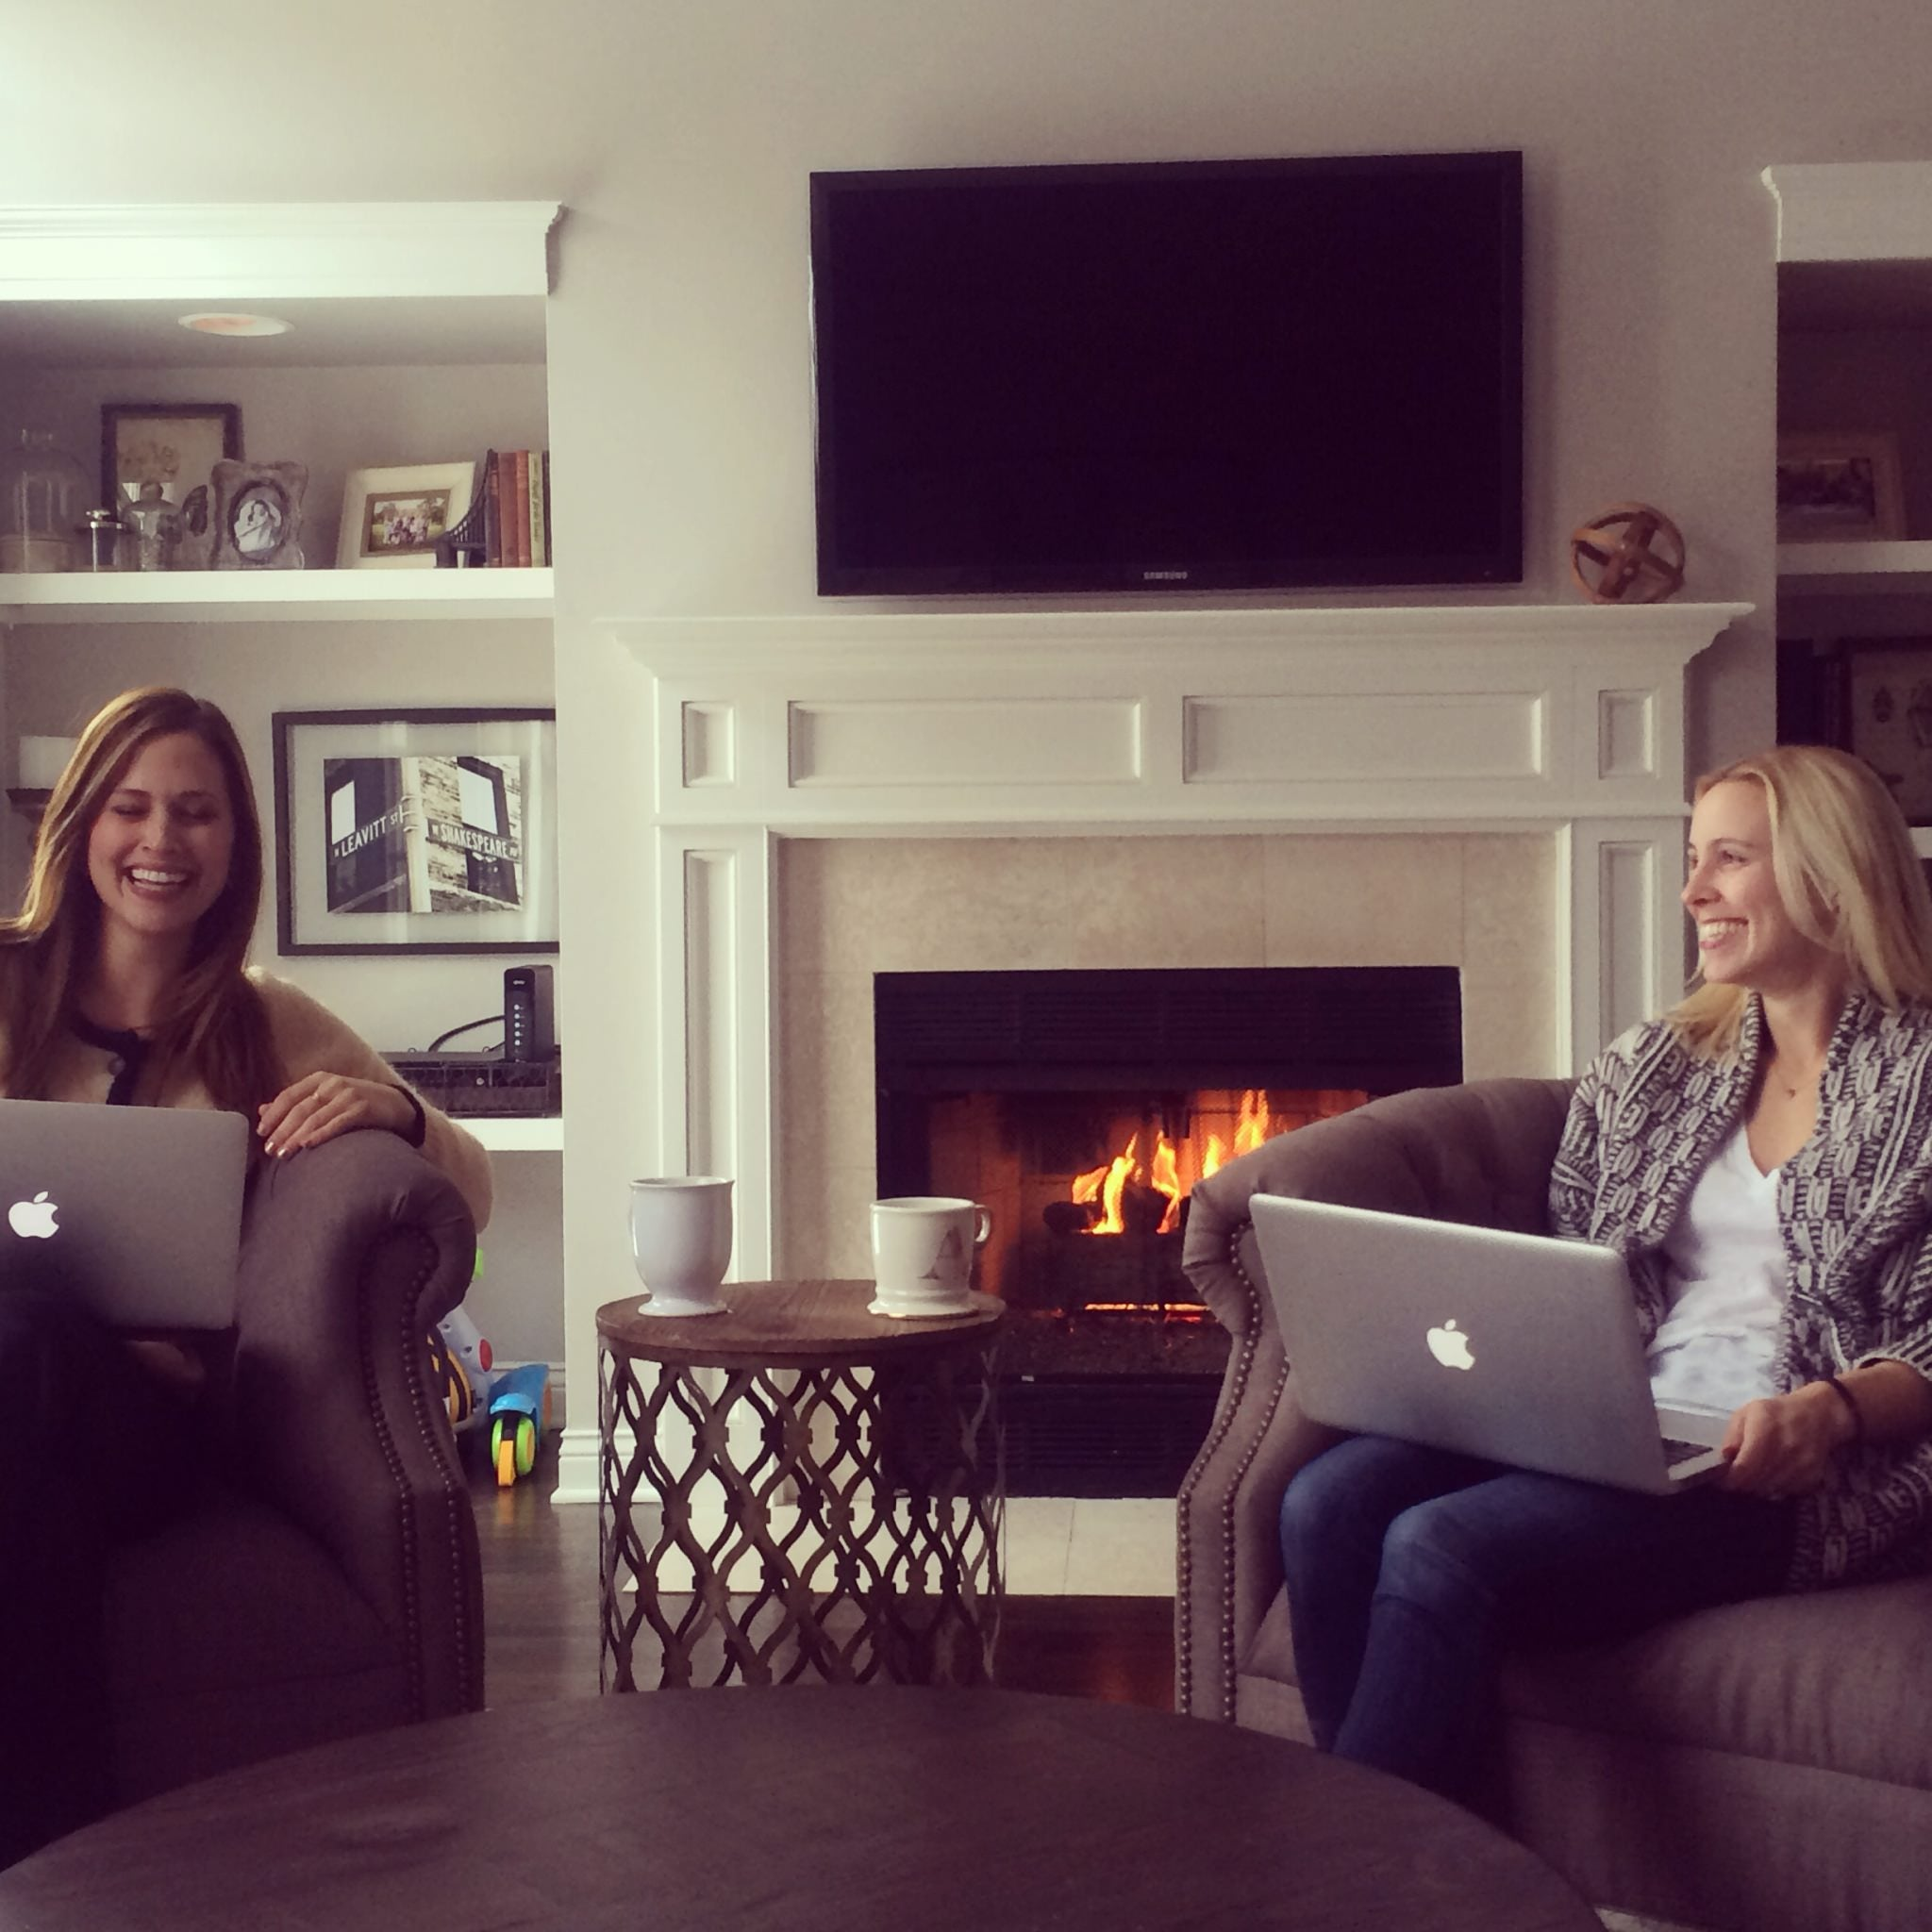 brooke ruder, ashley murphy, neat method, fireside pics, cozy setting